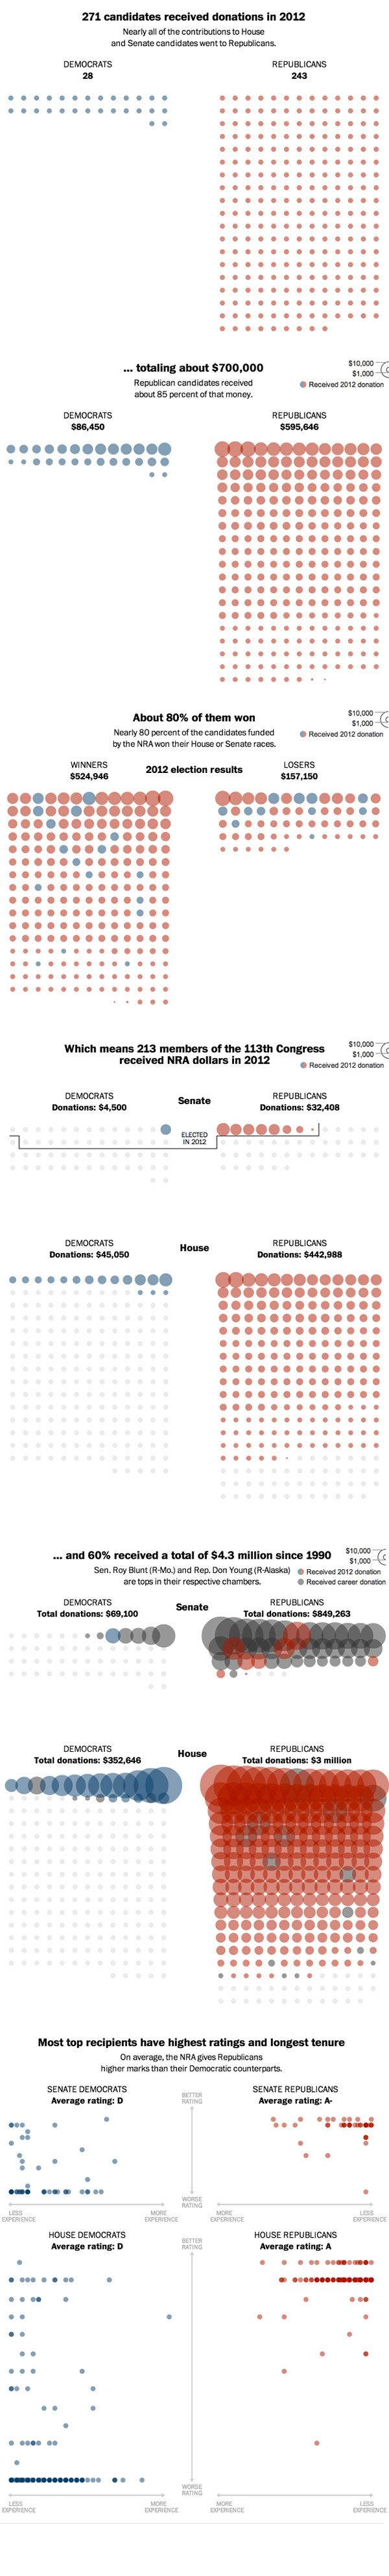 NRA lobbying influence on Congress infographic